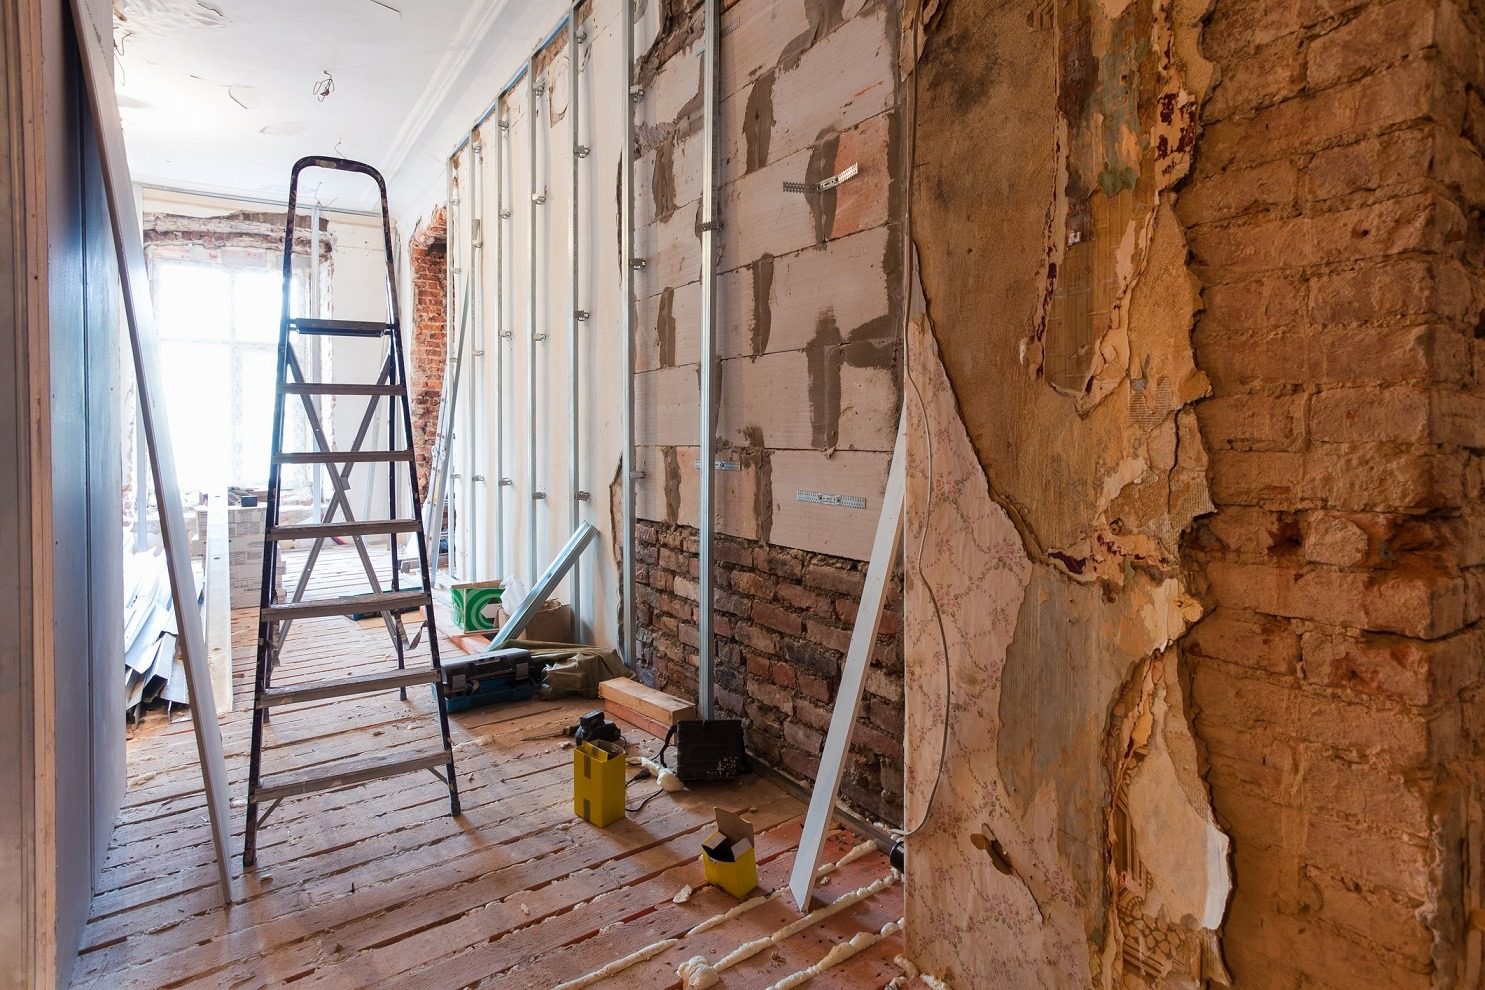 The Worst Thing About Getting Picked for an HGTV Home Renovation